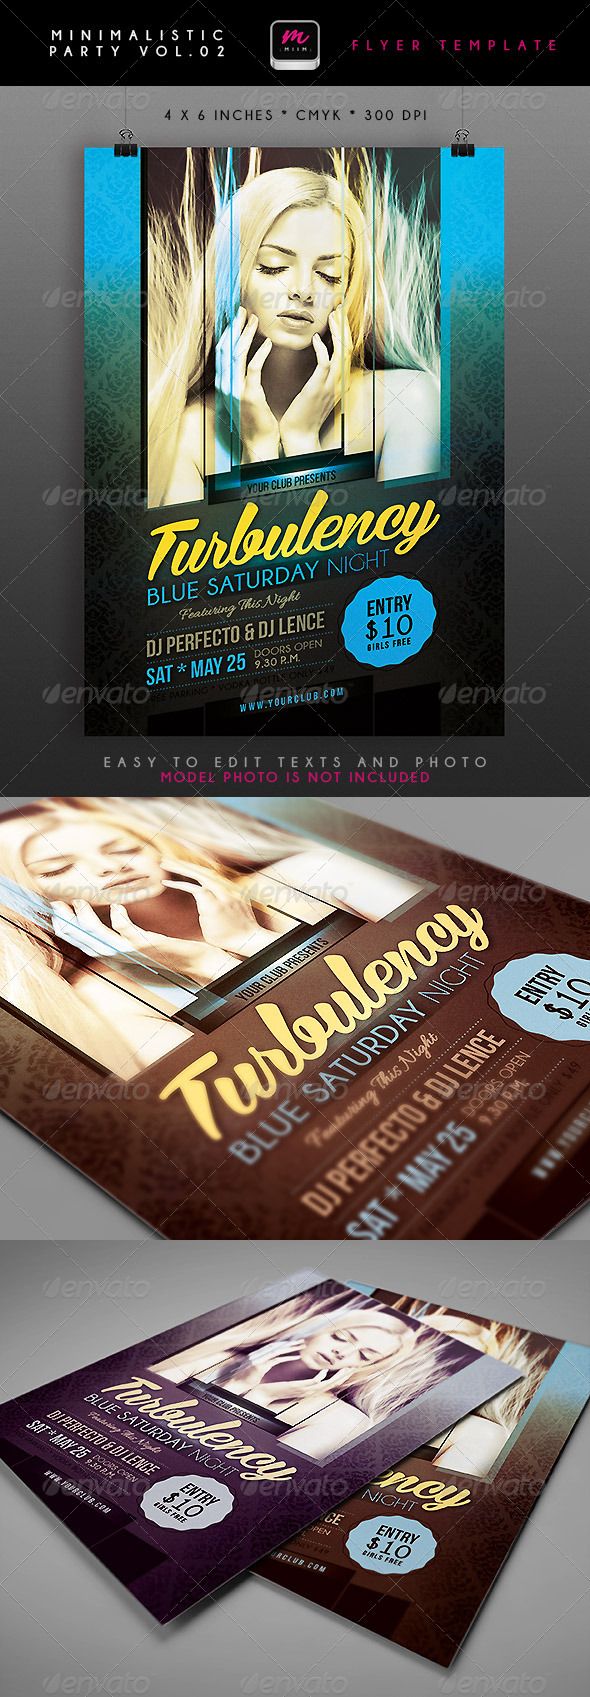 Minimalistic Party Flyer 2 - Clubs & Parties Events